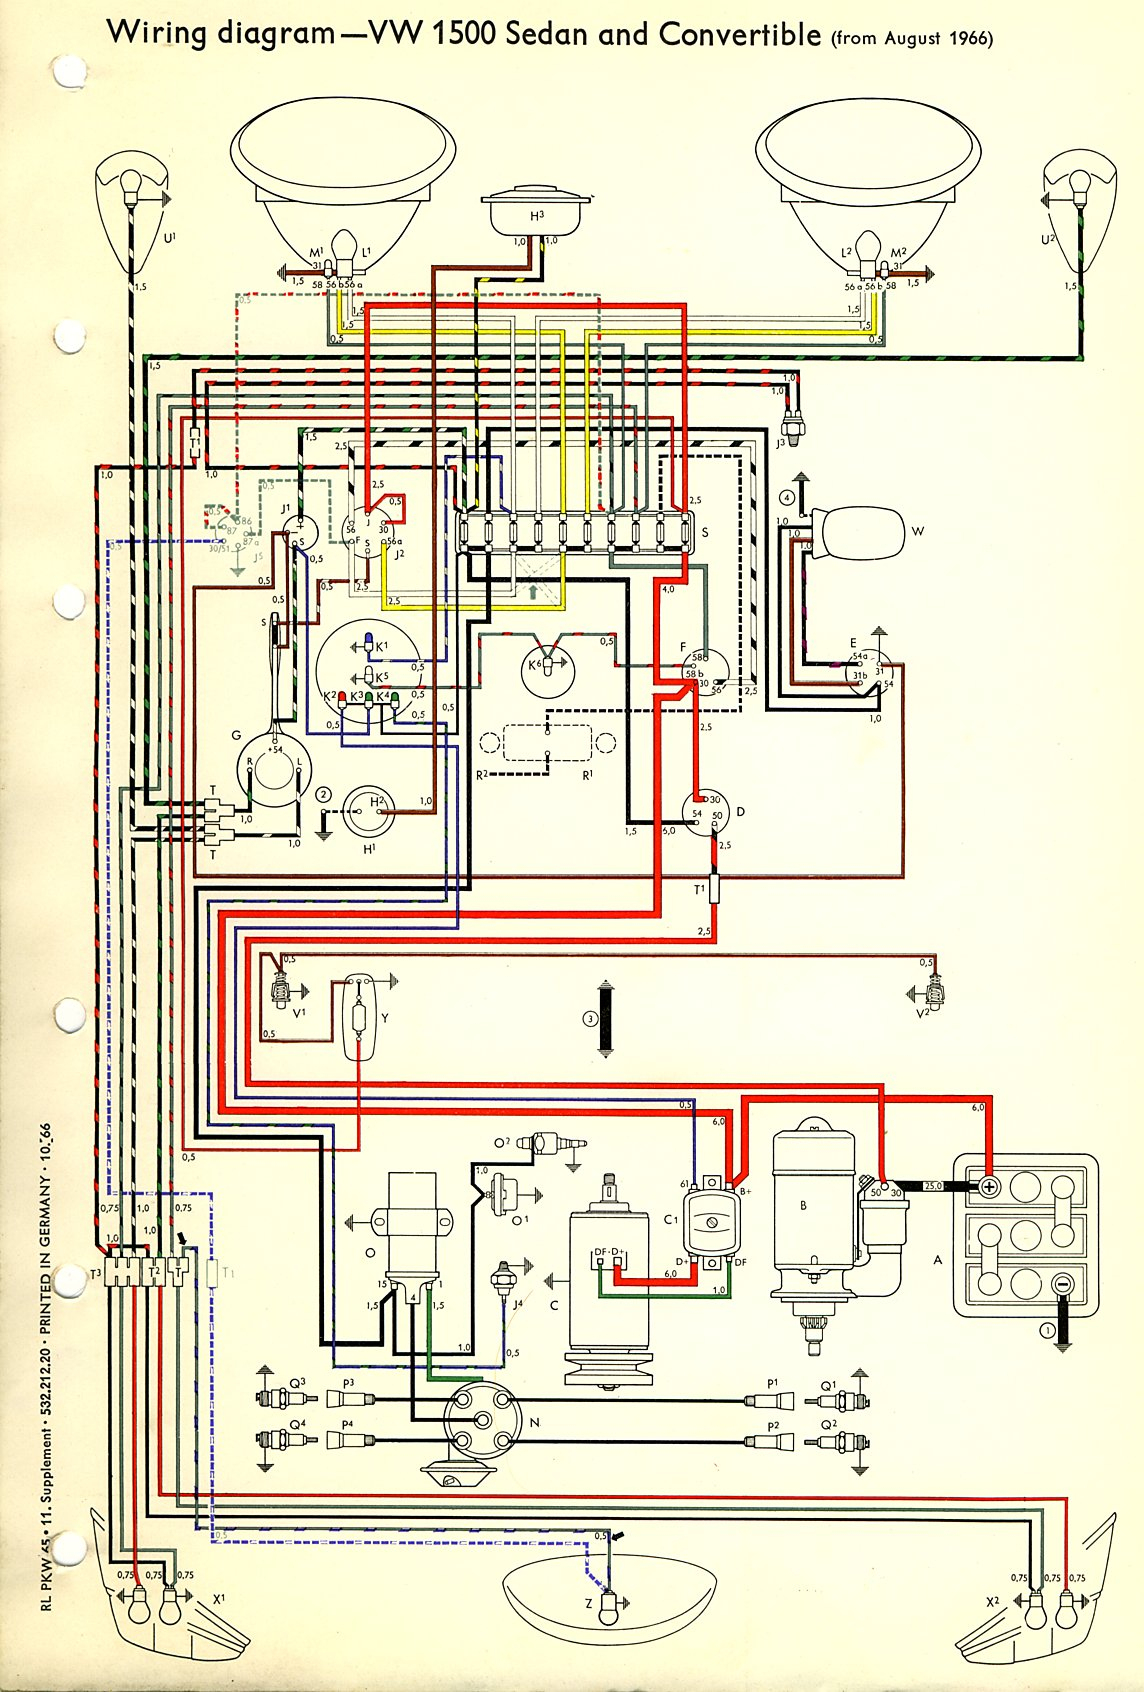 Vw Beetle Diagram - Wiring Diagrams Hubs - 1973 Vw Beetle Wiring Diagram